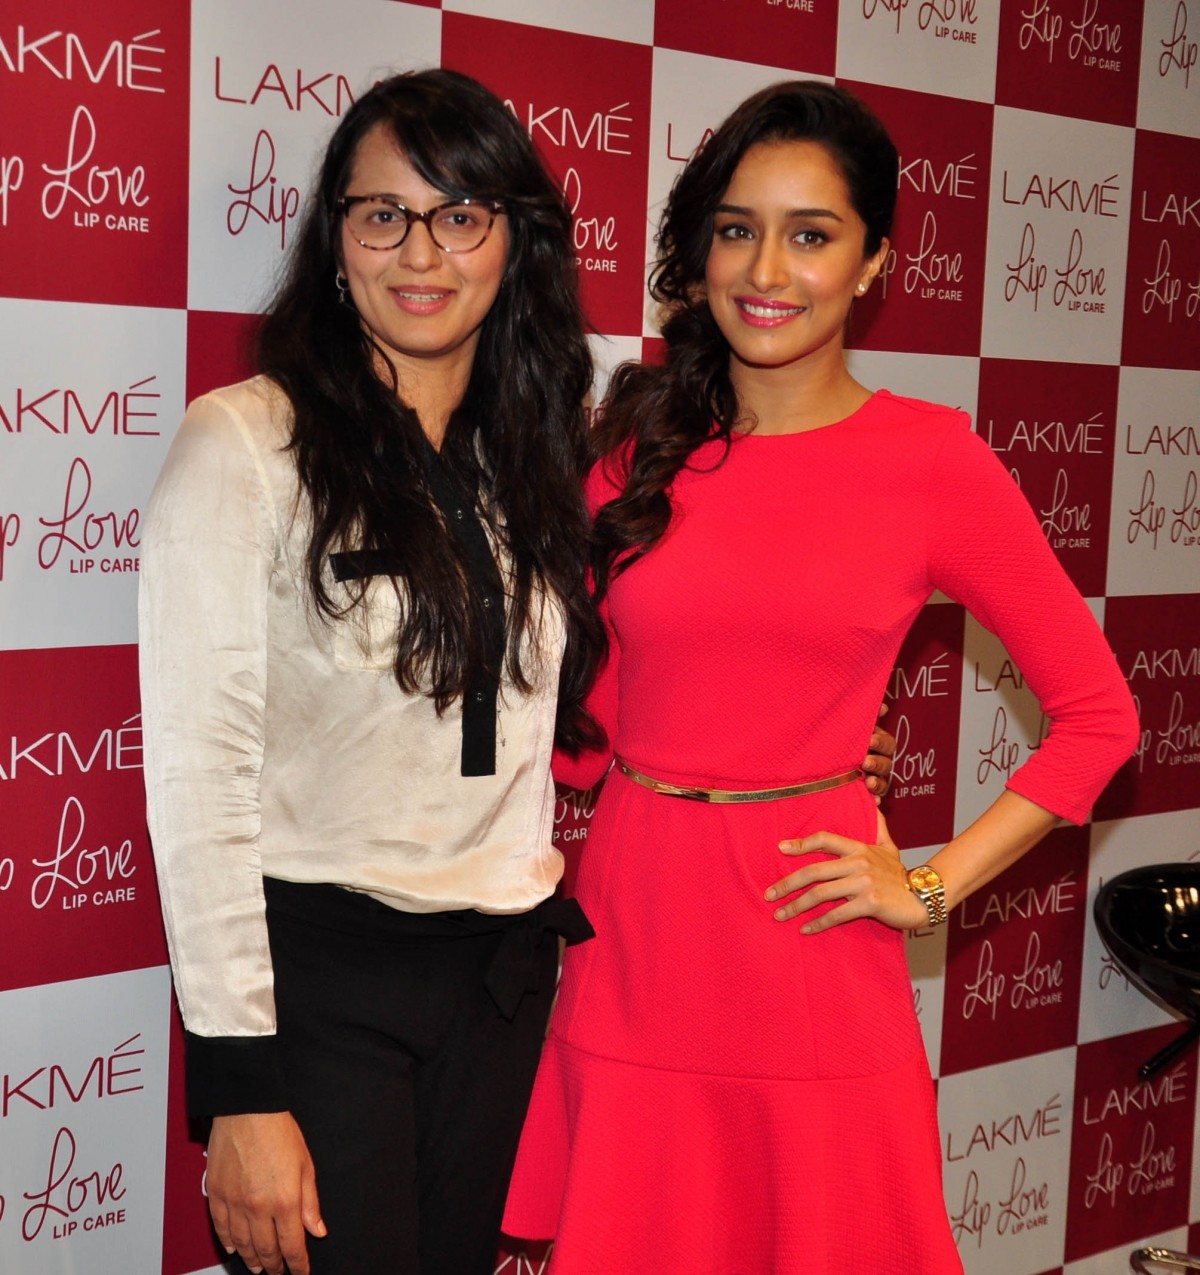 Shraddha Kapoor Charms Audience in Pink Dress at Lakme Event